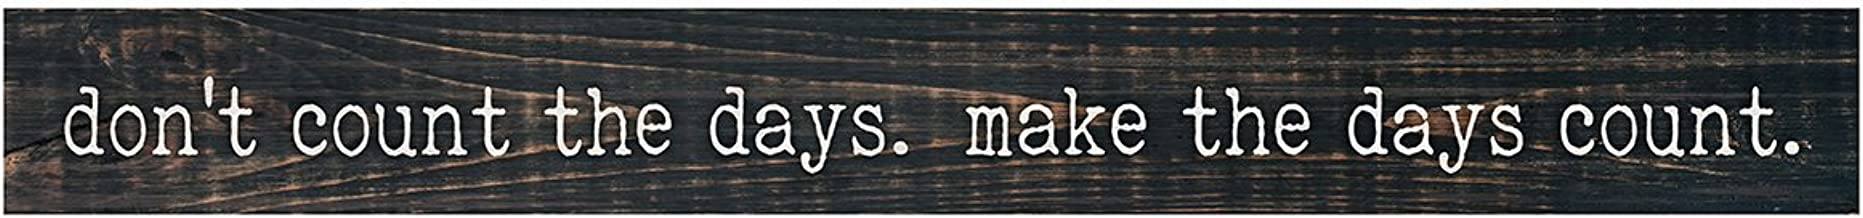 P. Graham Dunn Don't Count Days Make Count Dark Rustic 13.5 x 1.5 Inch Wood Skinny Block Tabletop Sign